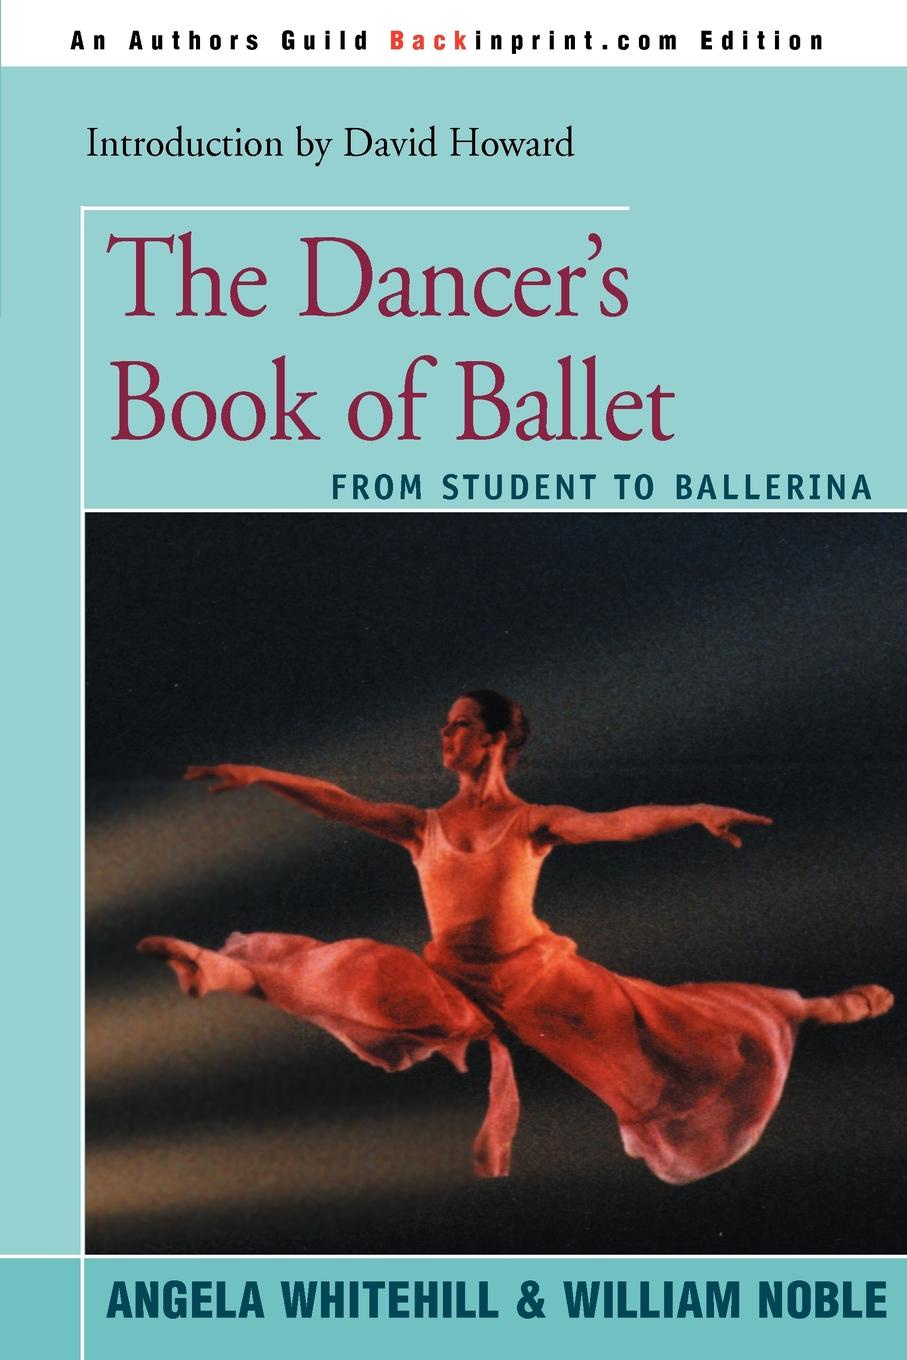 Angela Whitehill, William Noble The Dancer's Book of Ballet. From Student to Ballerina ch s bovy lysberg la ballerina op 68